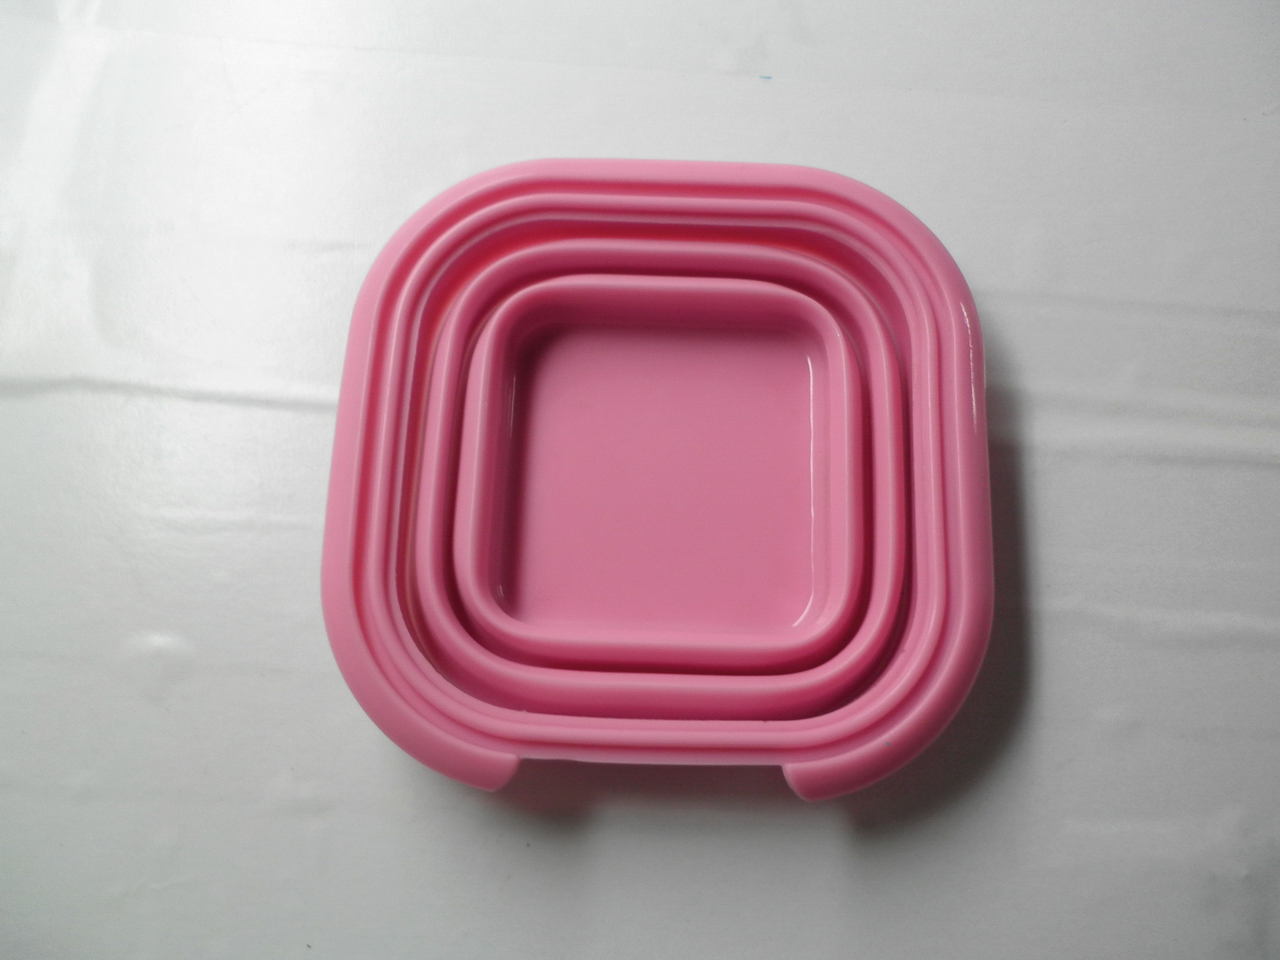 http://www.refinehksilicone.cn/data/images/product/20180418101226_352.jpg